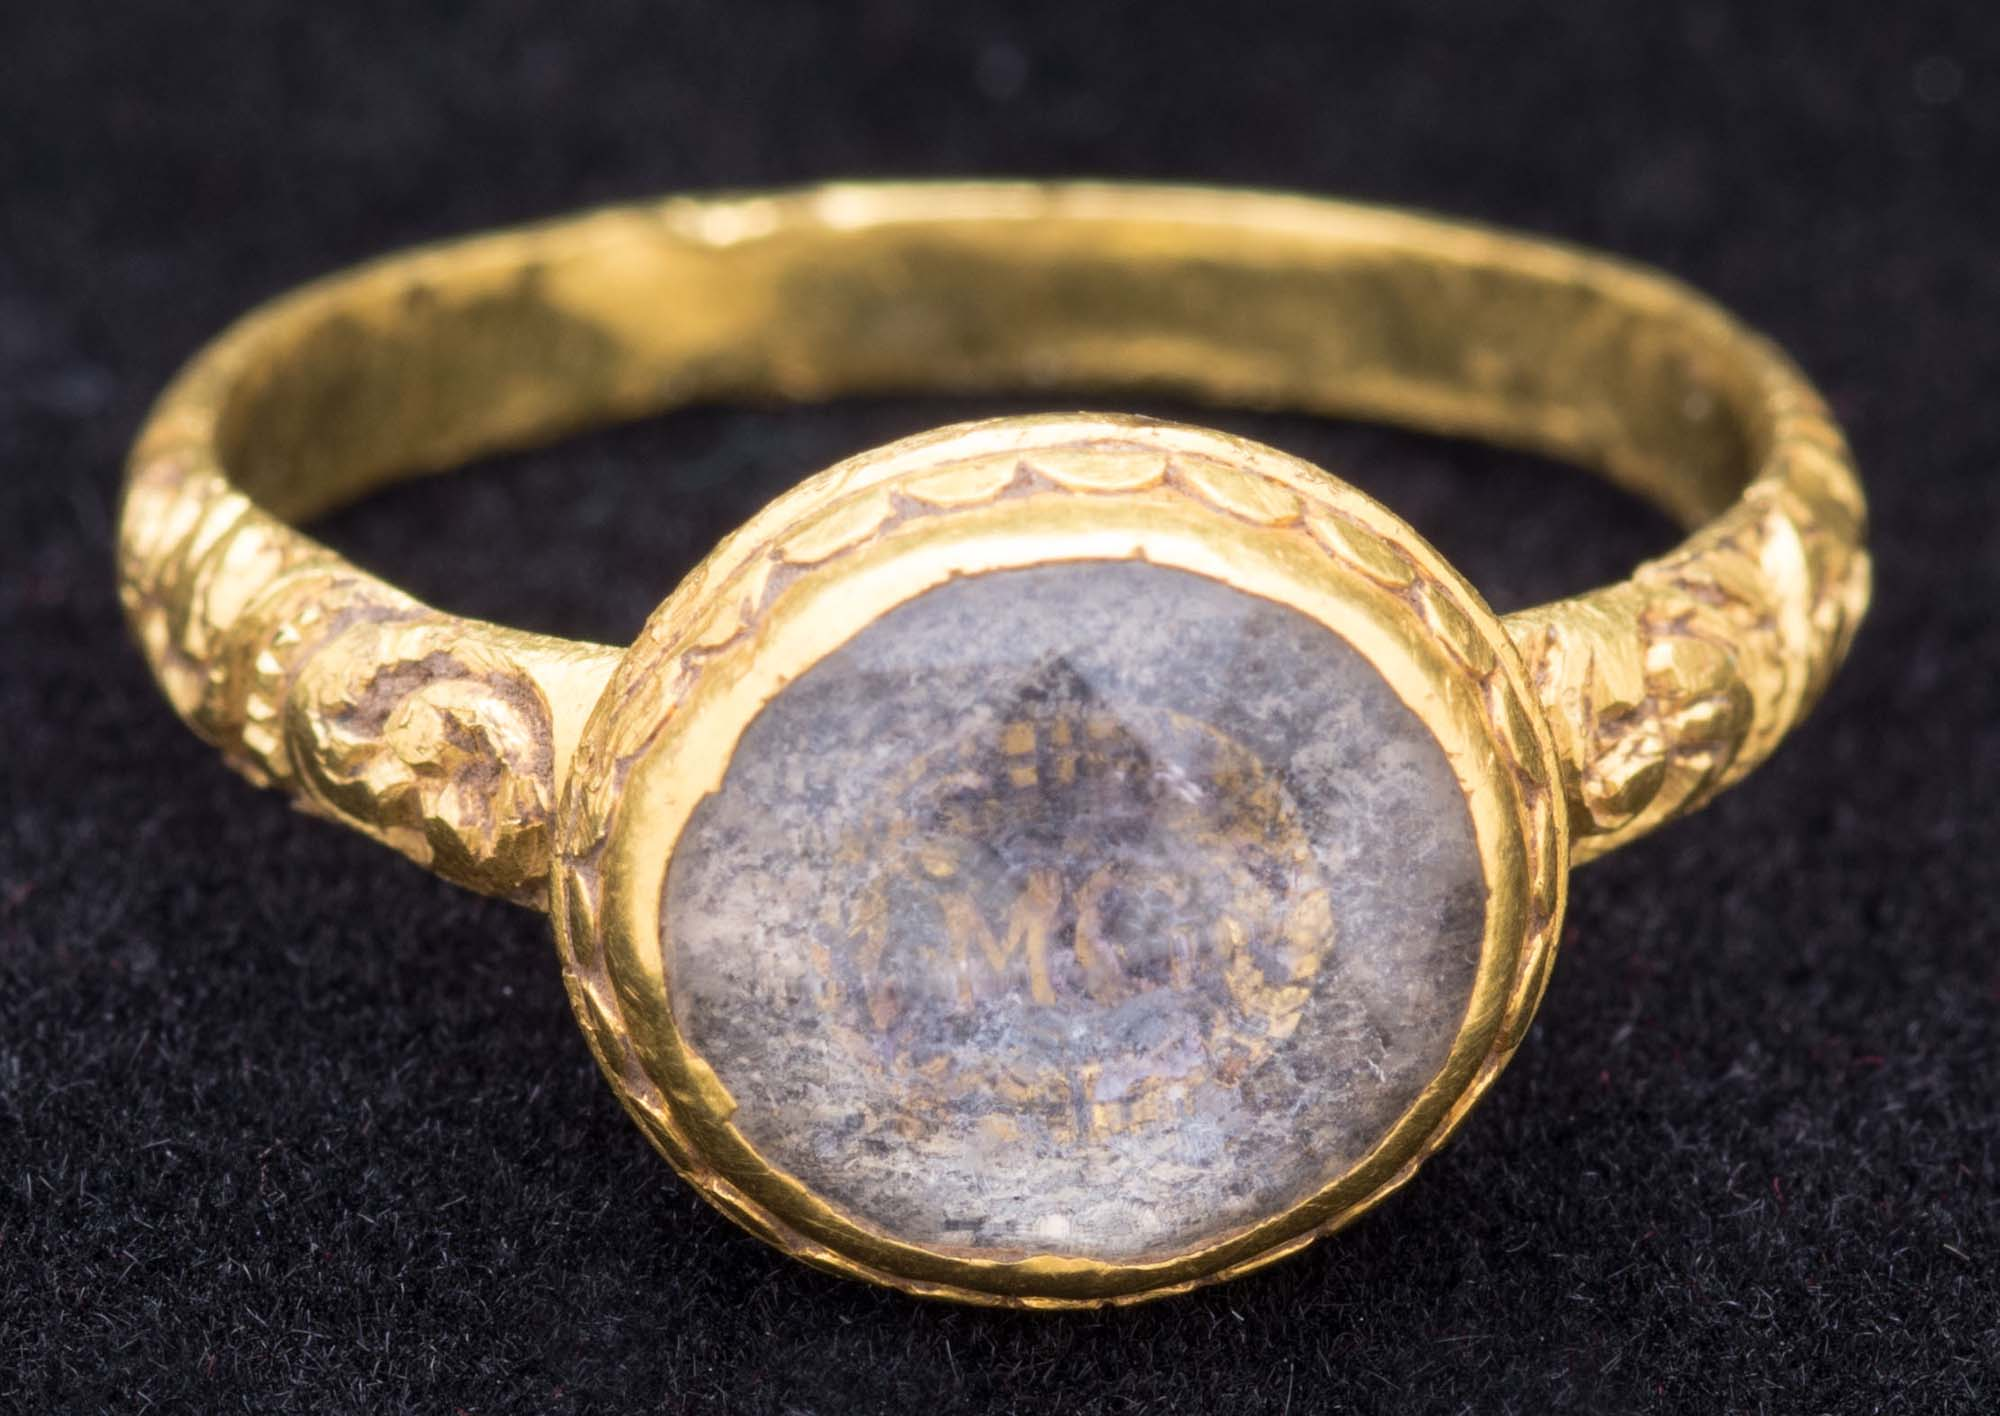 a photo of a gold ring with an opal centre